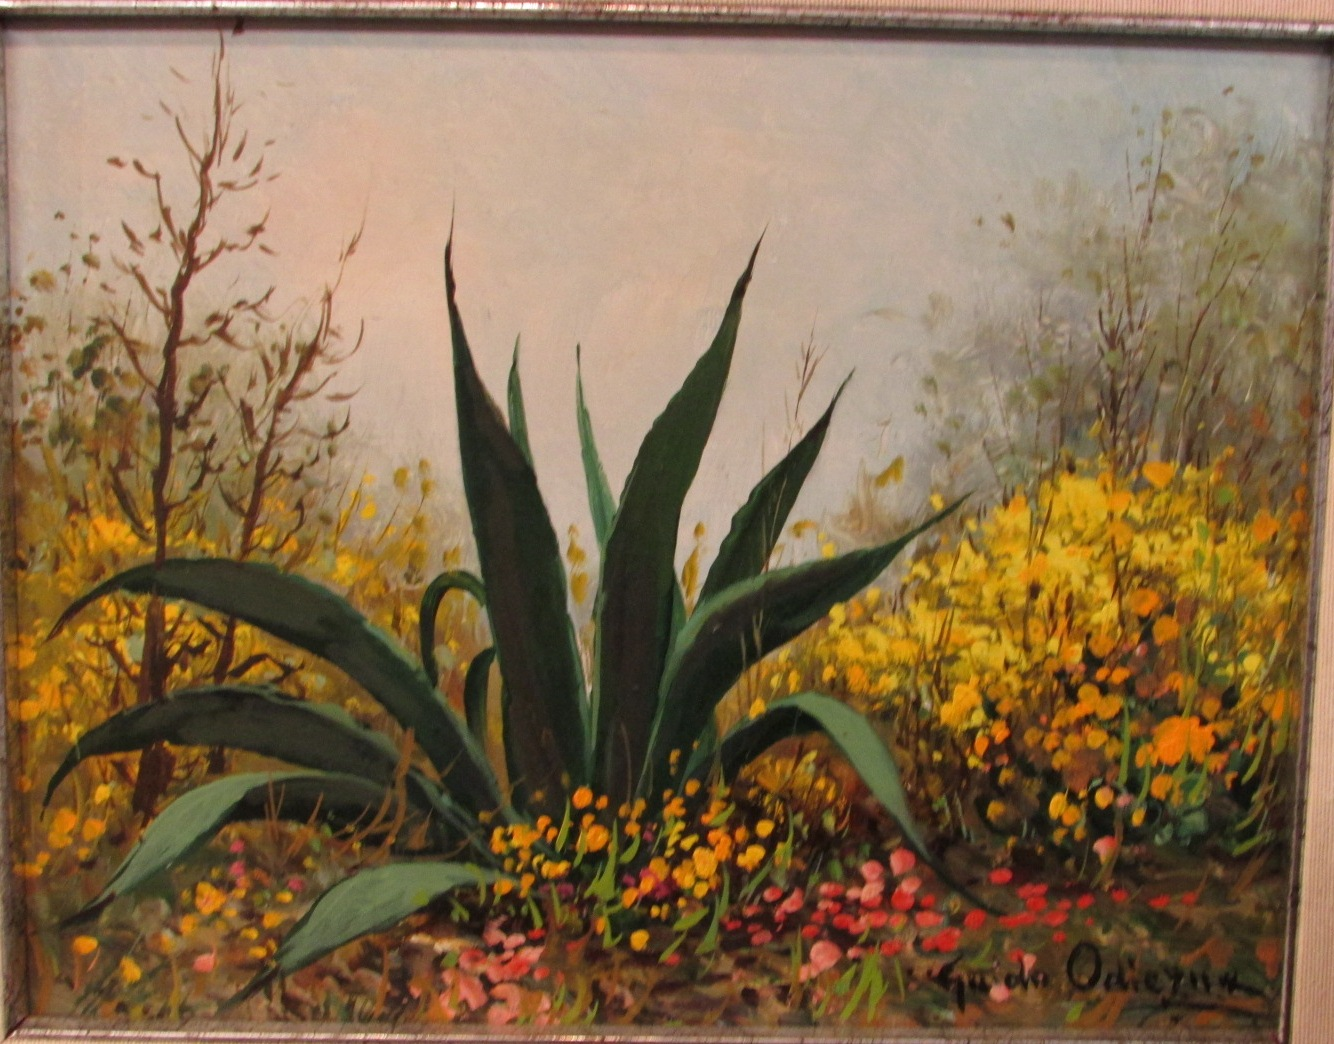 Lot 41 - Agave amongst yellow and pink flowers, oil on board, signed Guido Odierna lower right (22cm x 28.